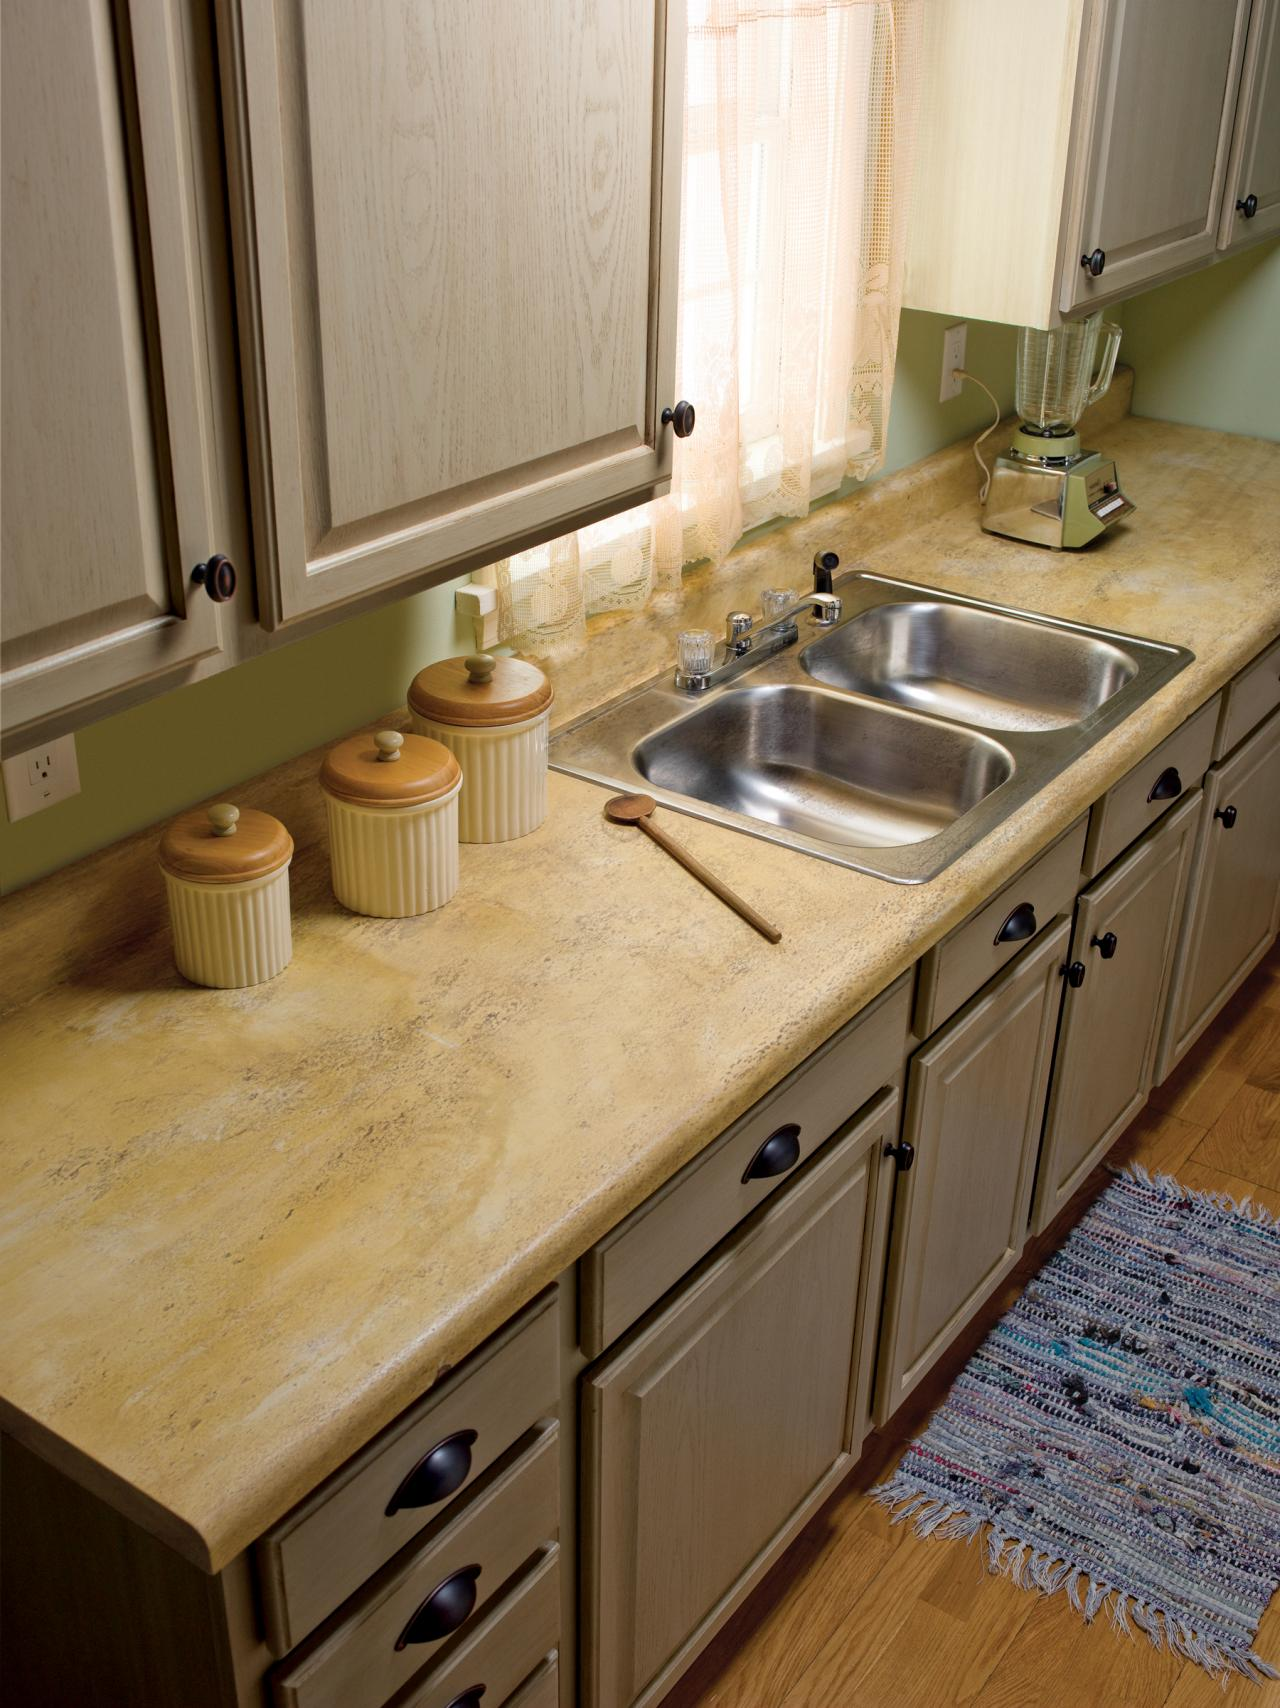 How to Repair and Refinish Laminate Countertops | DIY